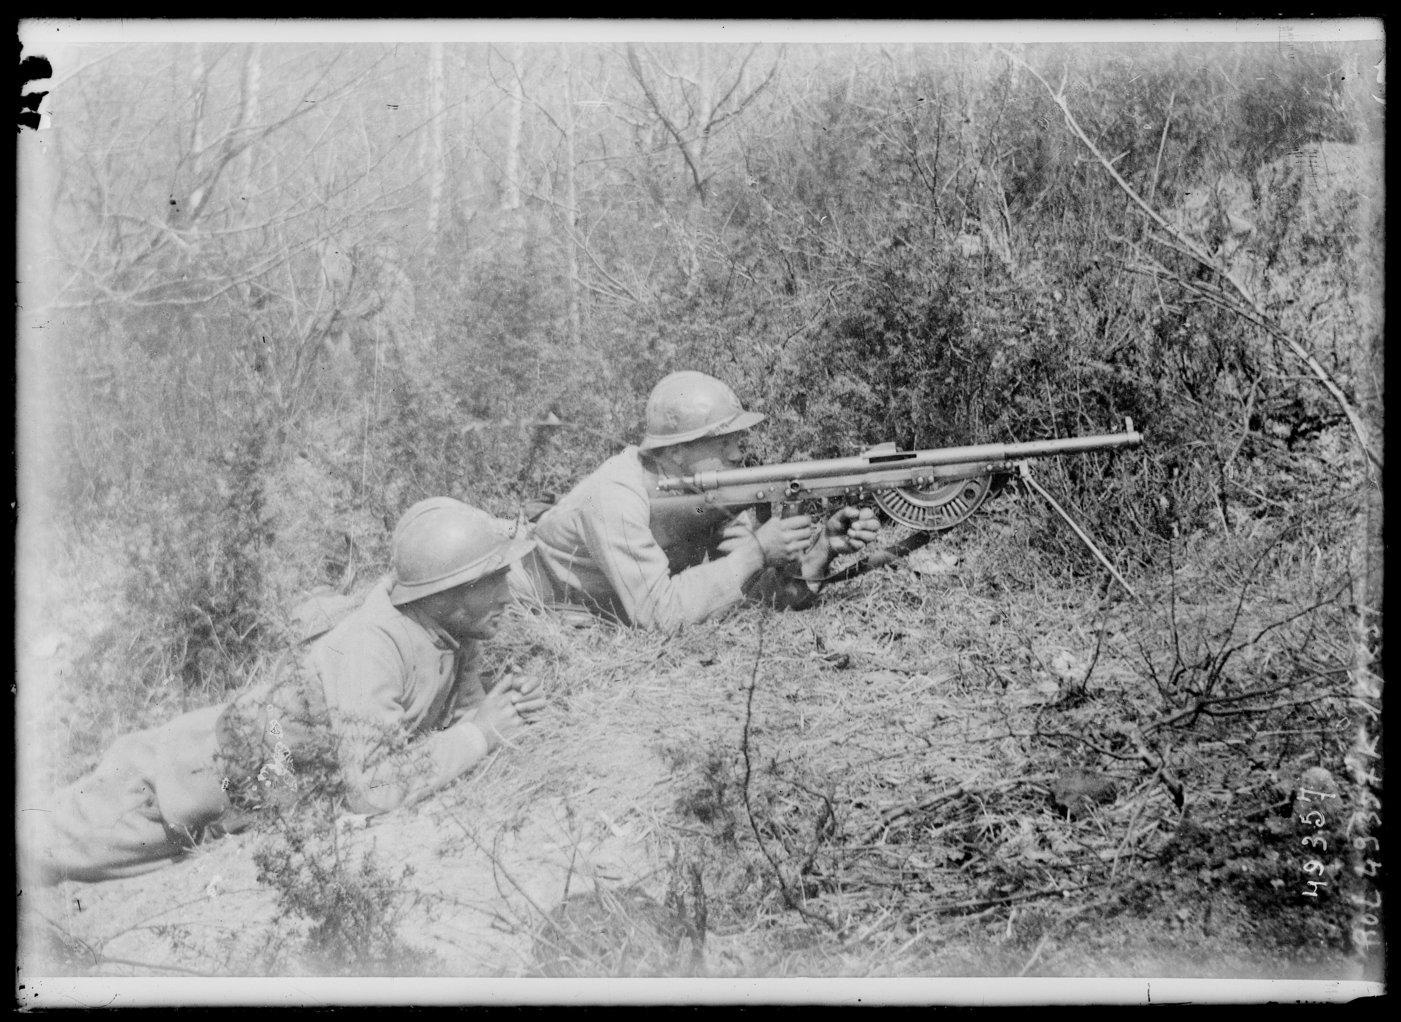 Machine Guns In World War 1